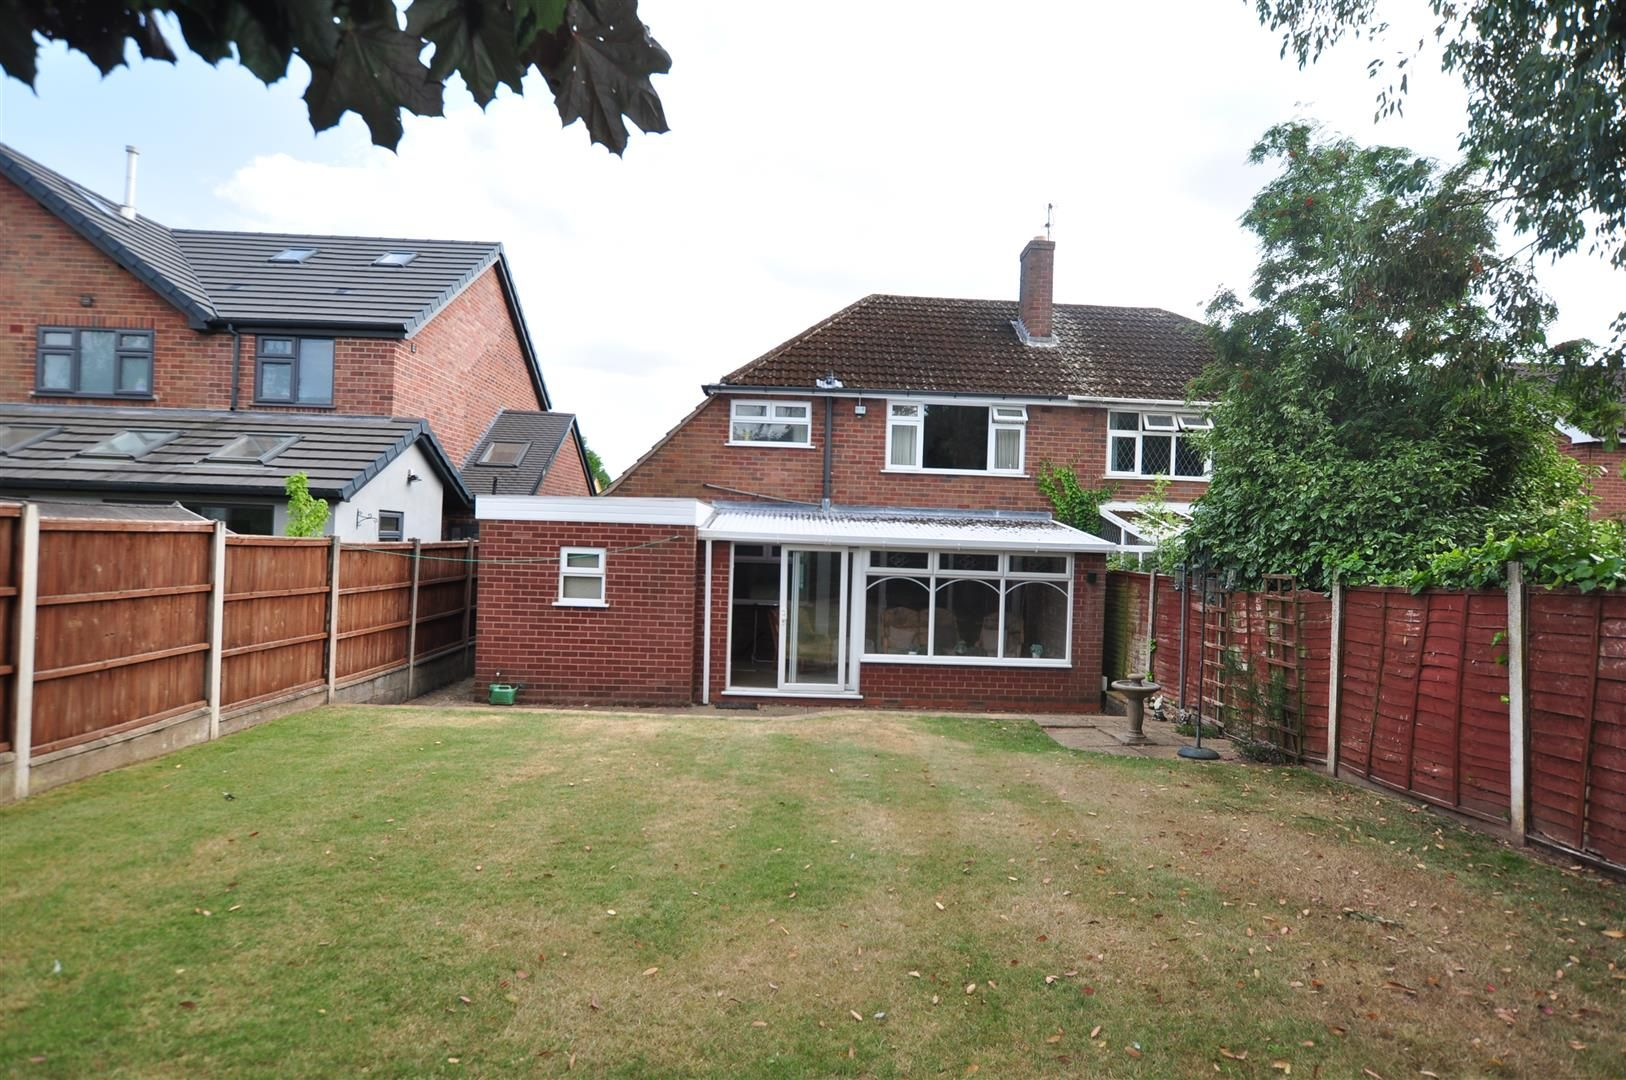 3 bed semi-detached for sale in Hagley 2